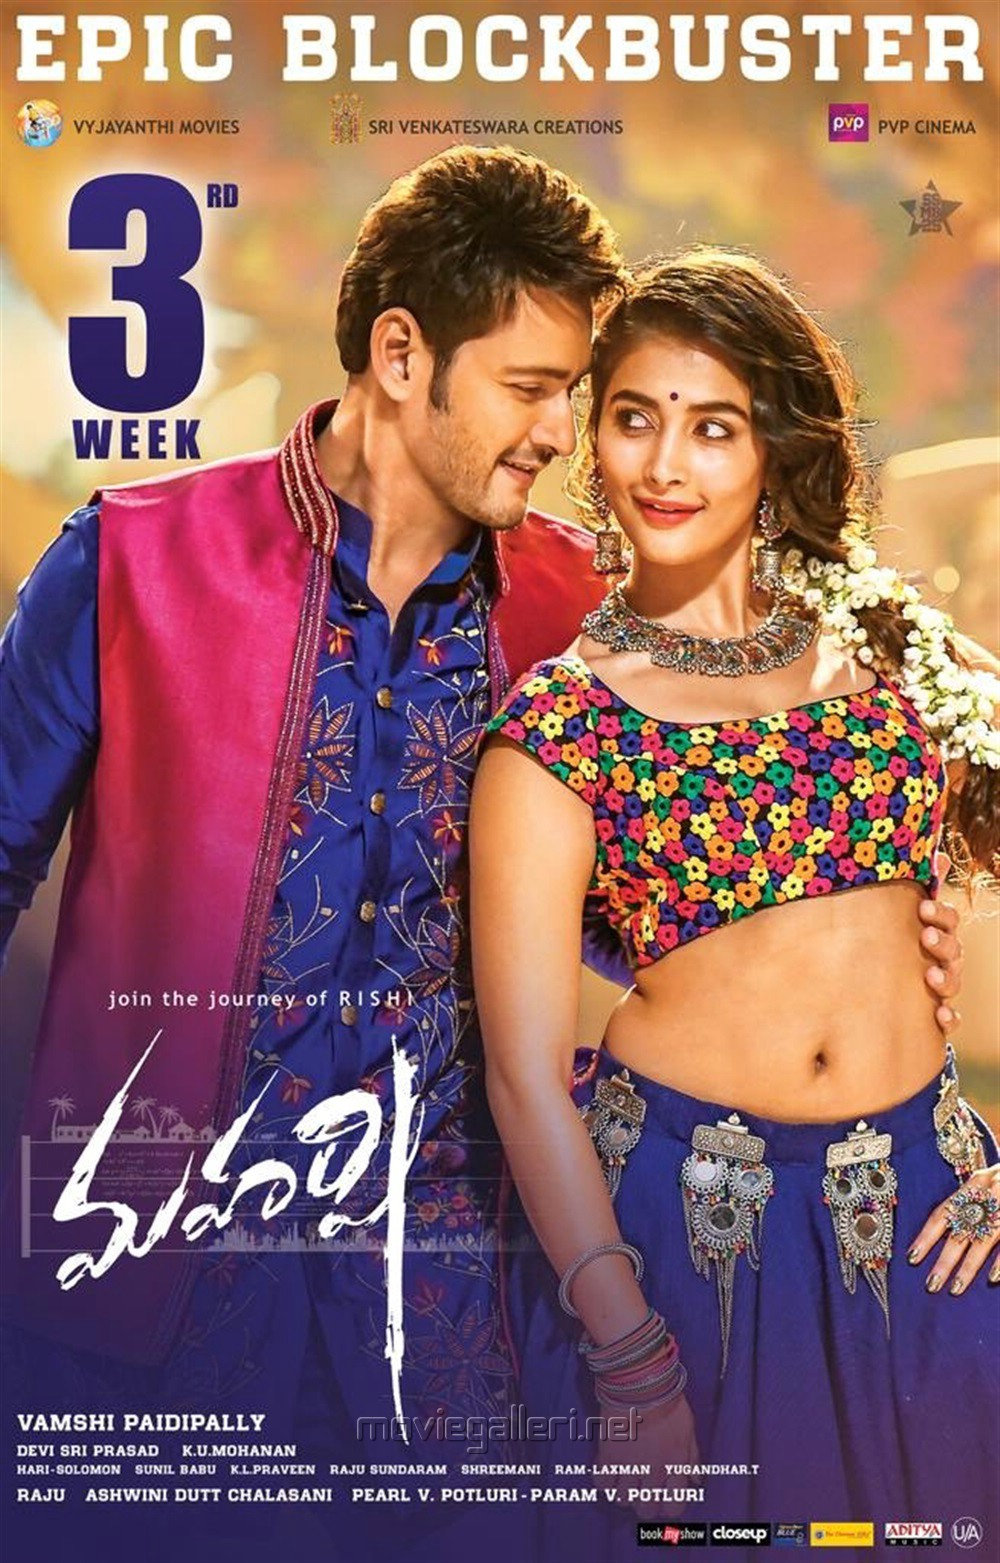 Mahesh Babu Maharshi Movie 3rd Week Posters | New Movie Posters